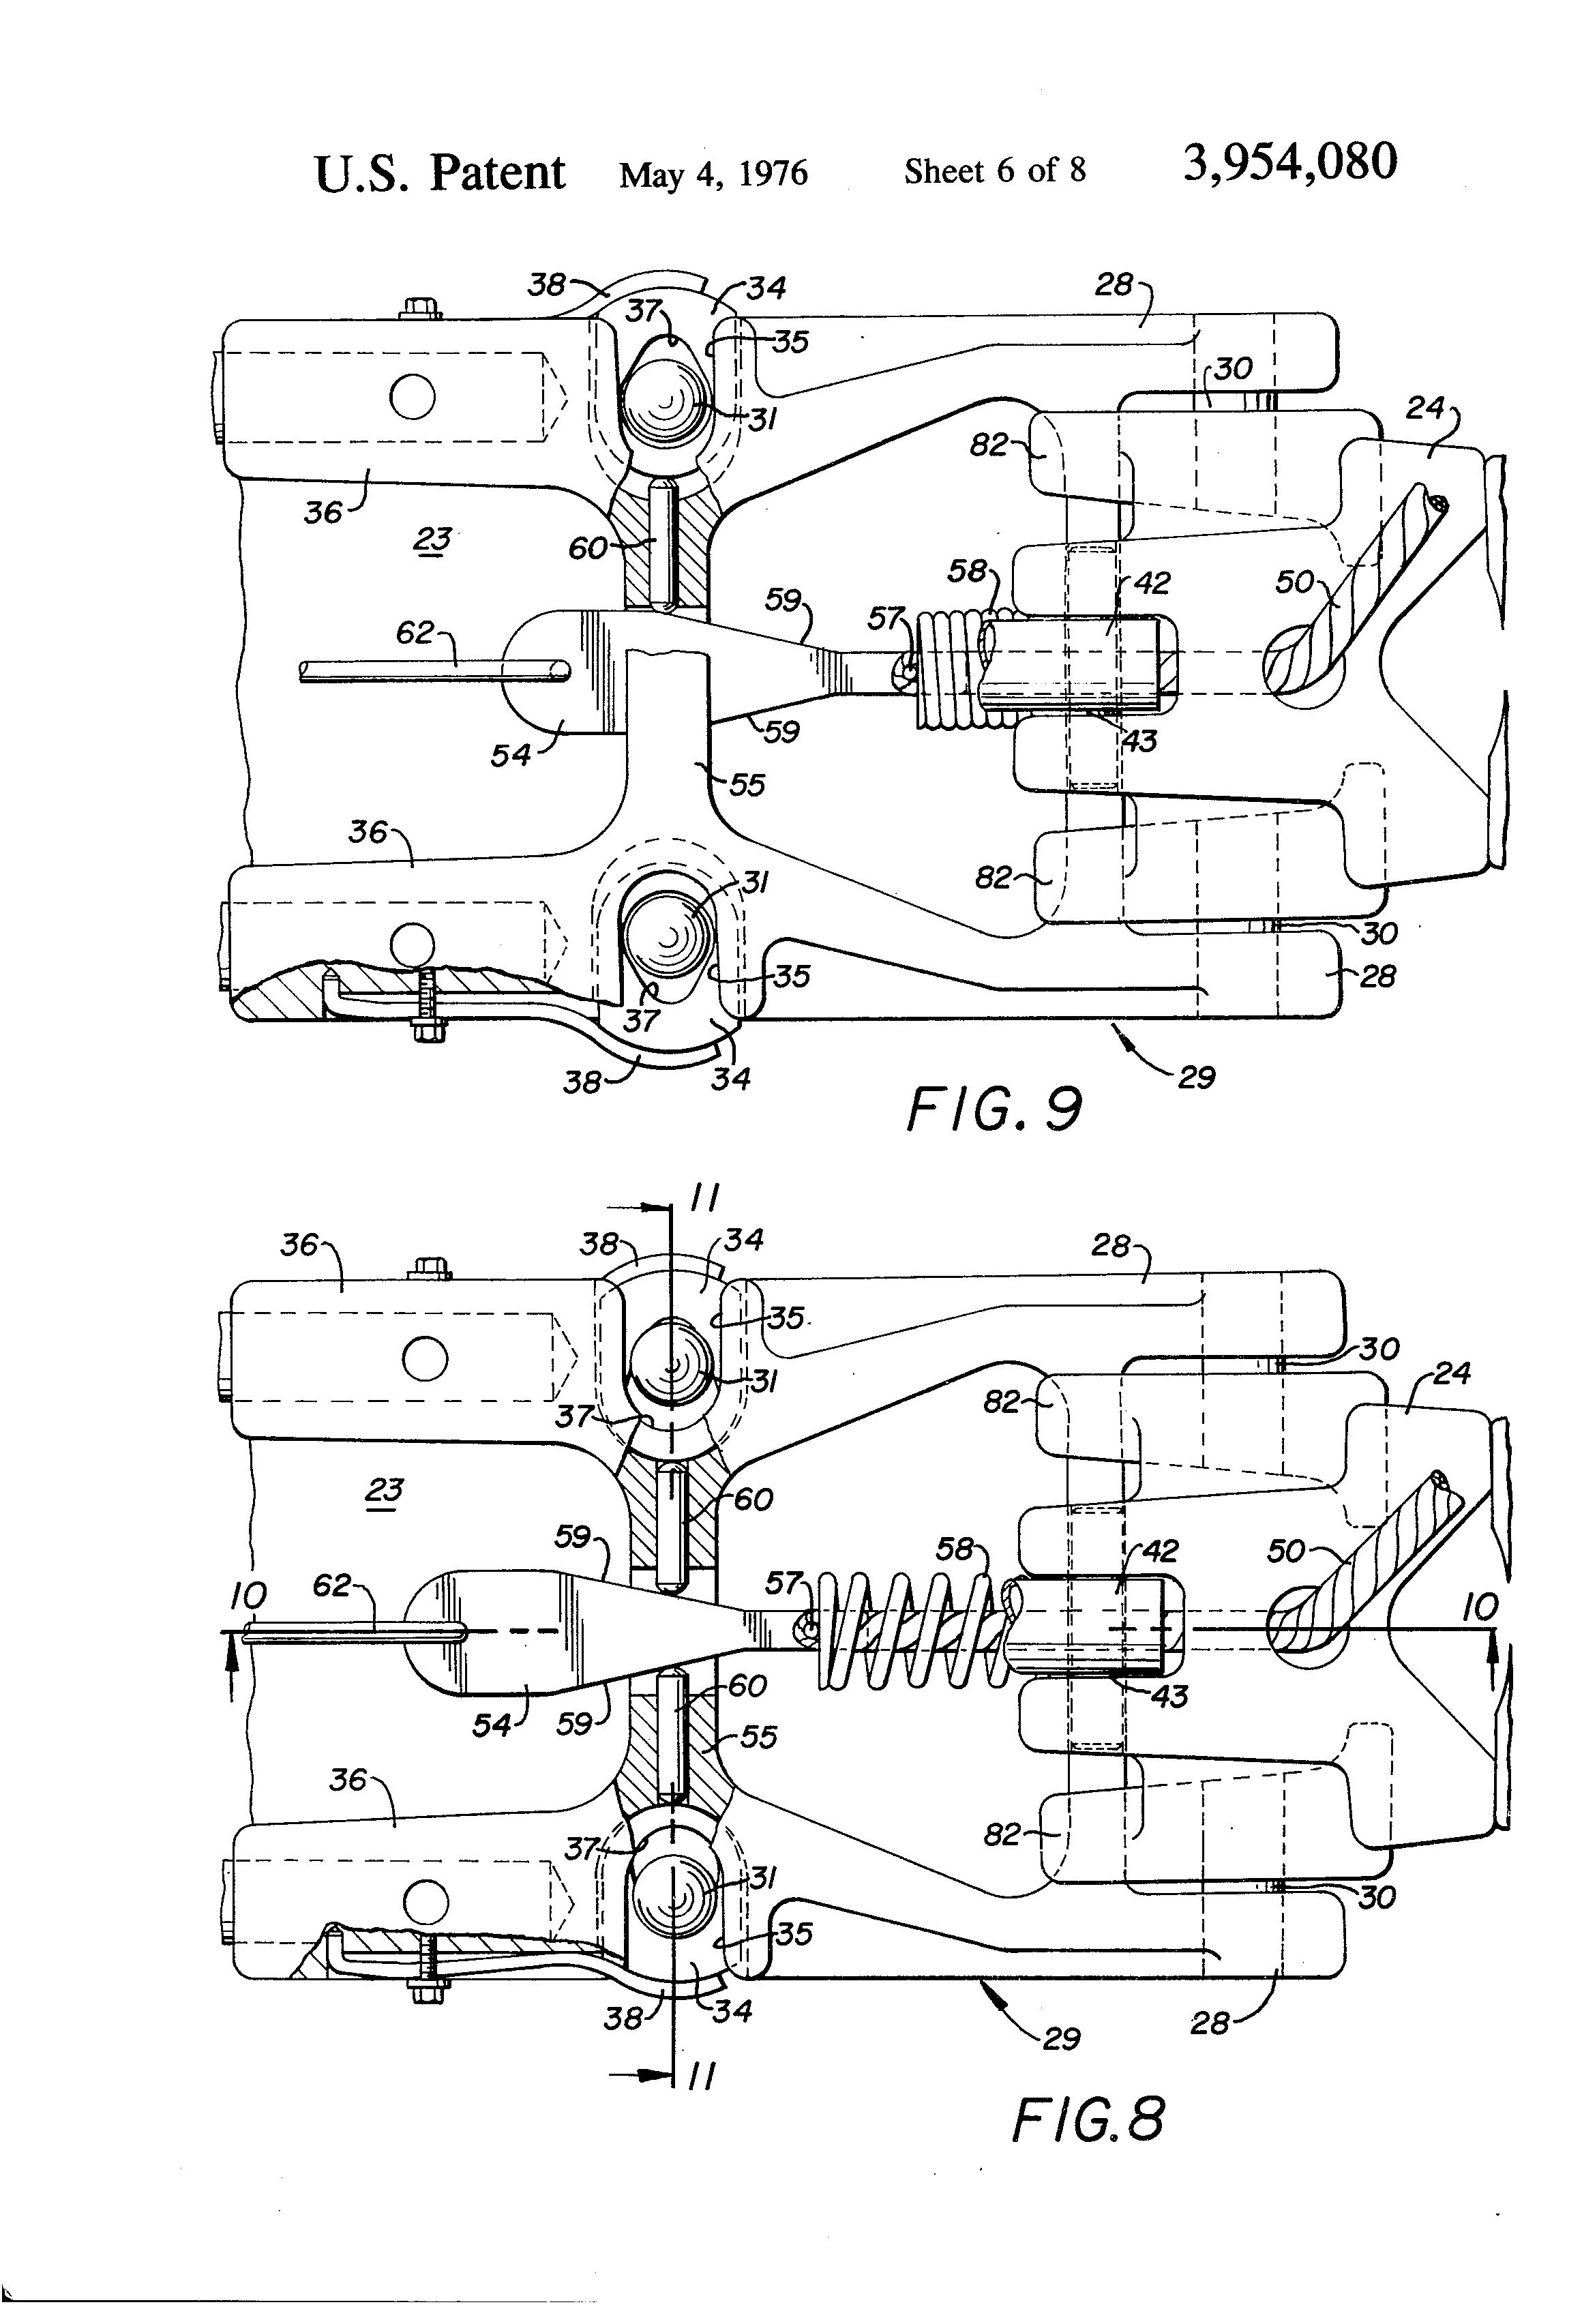 Brevet Us3954080 Bow Mount For Trolling Motors Google Brevets 1983 Datsun 720 Wiring Diagram Patent Drawing